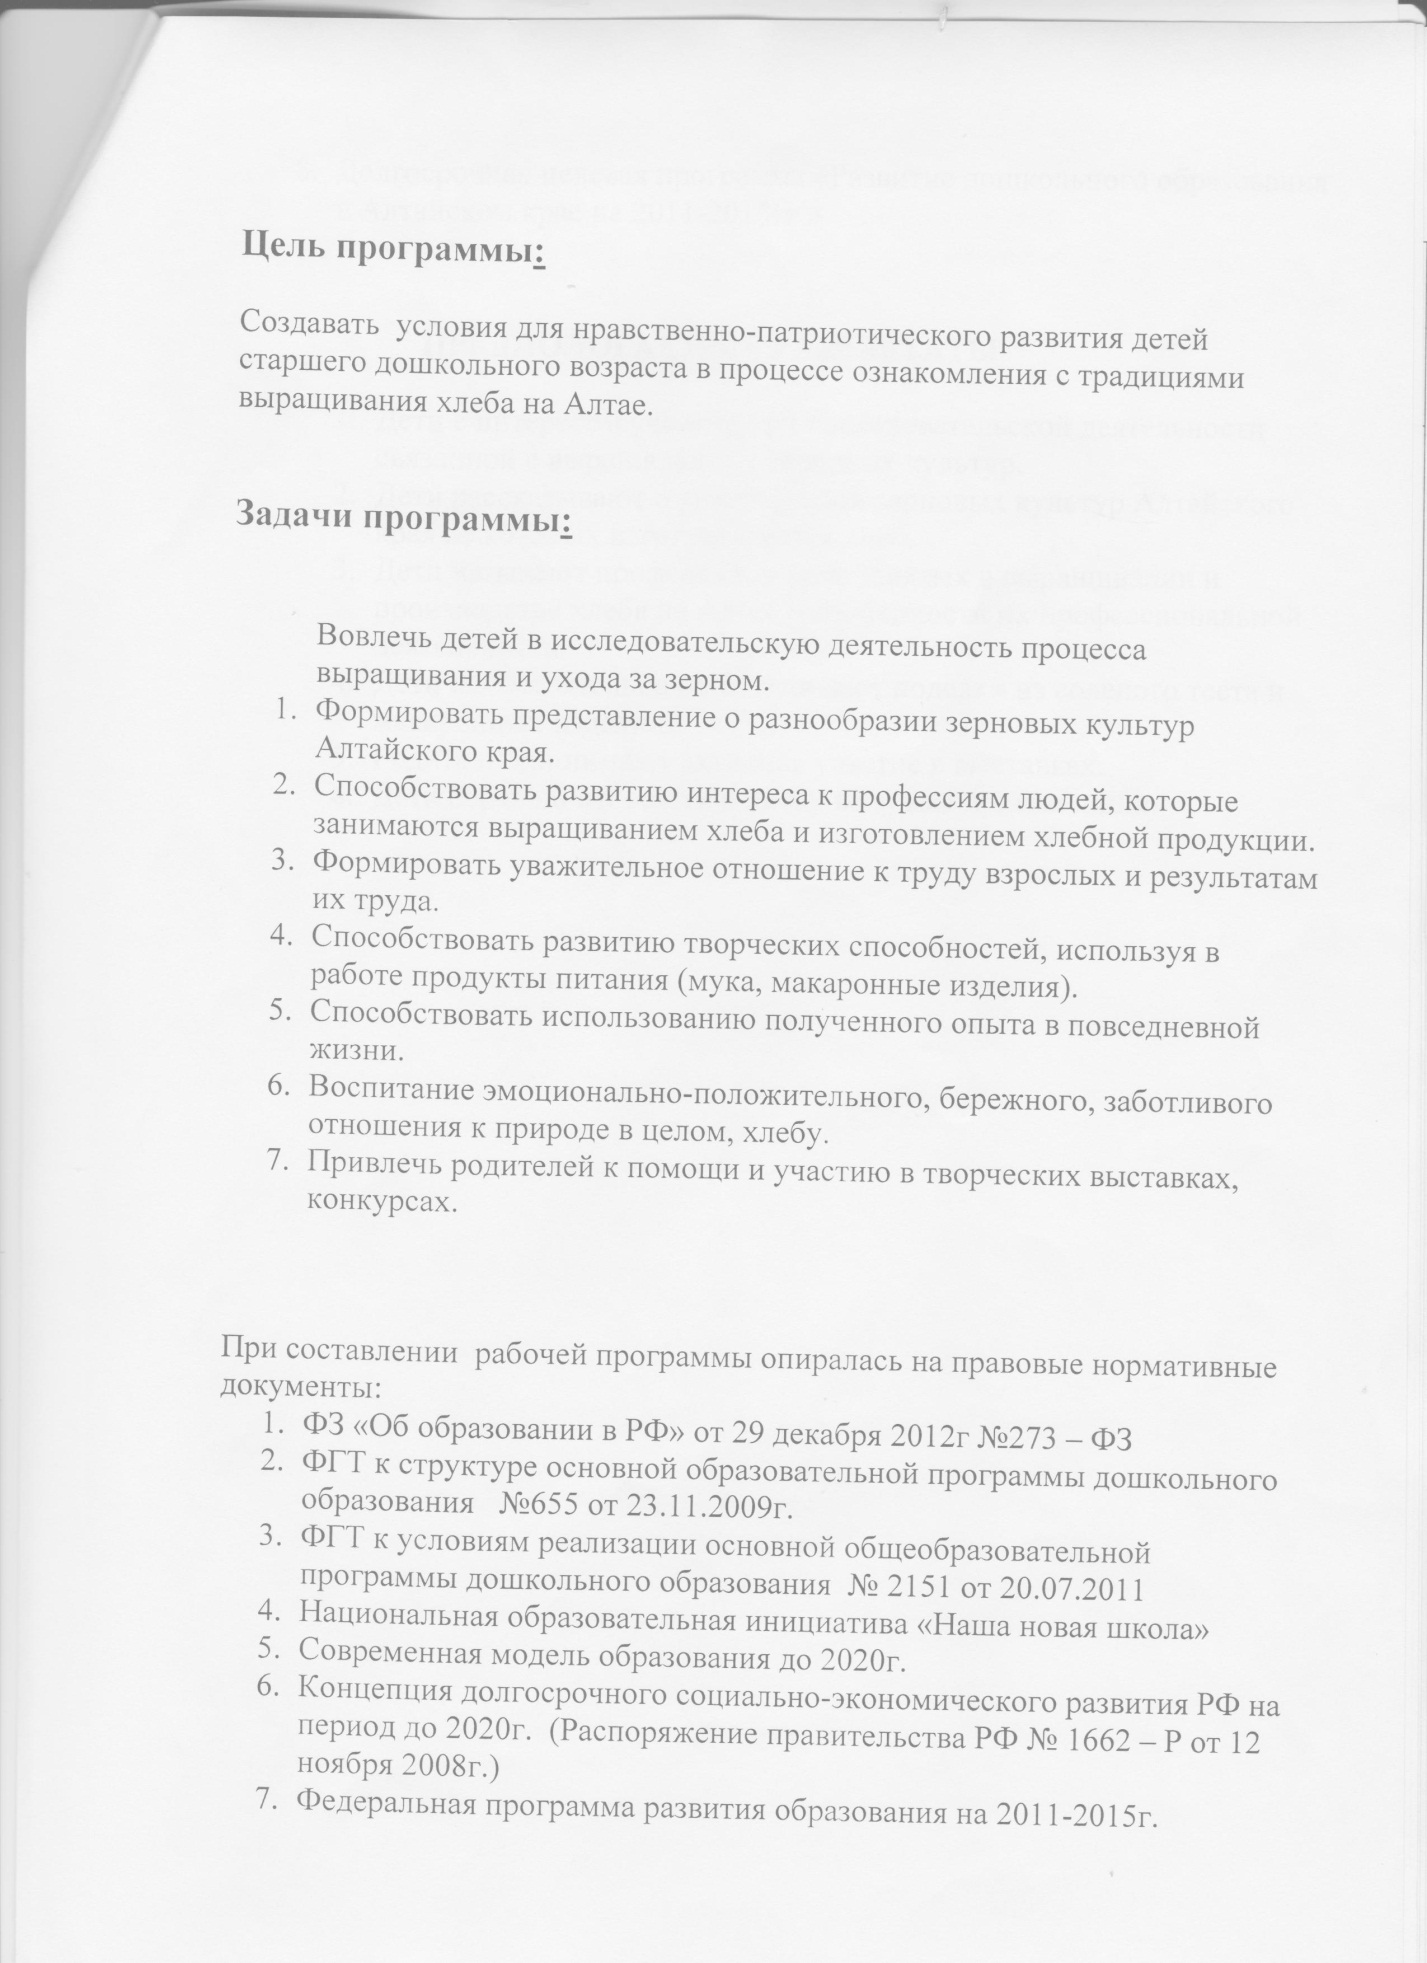 C:\Users\ADMIN\Pictures\2015-10-22 РАБОЧИЙ СТОЛ\РАБОЧИЙ СТОЛ 003.jpg